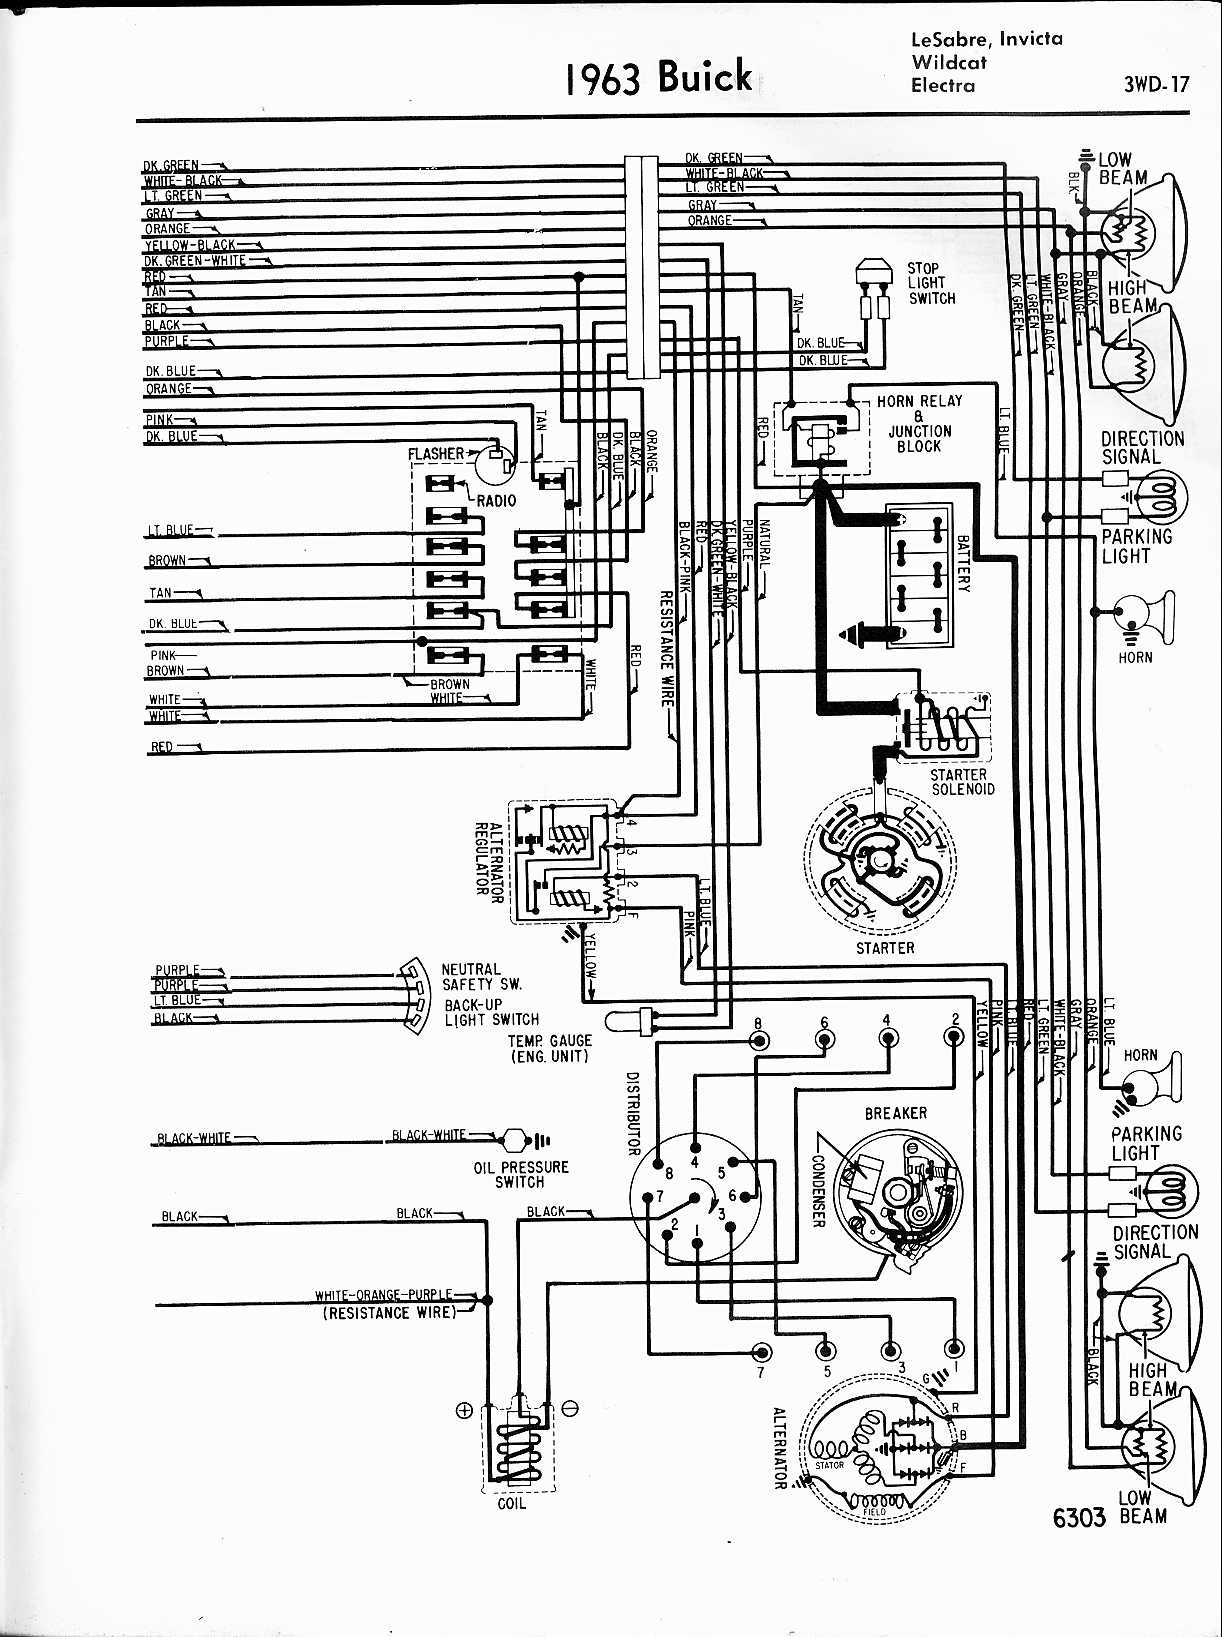 1988 winnebago wiring diagrams winnebago electrical